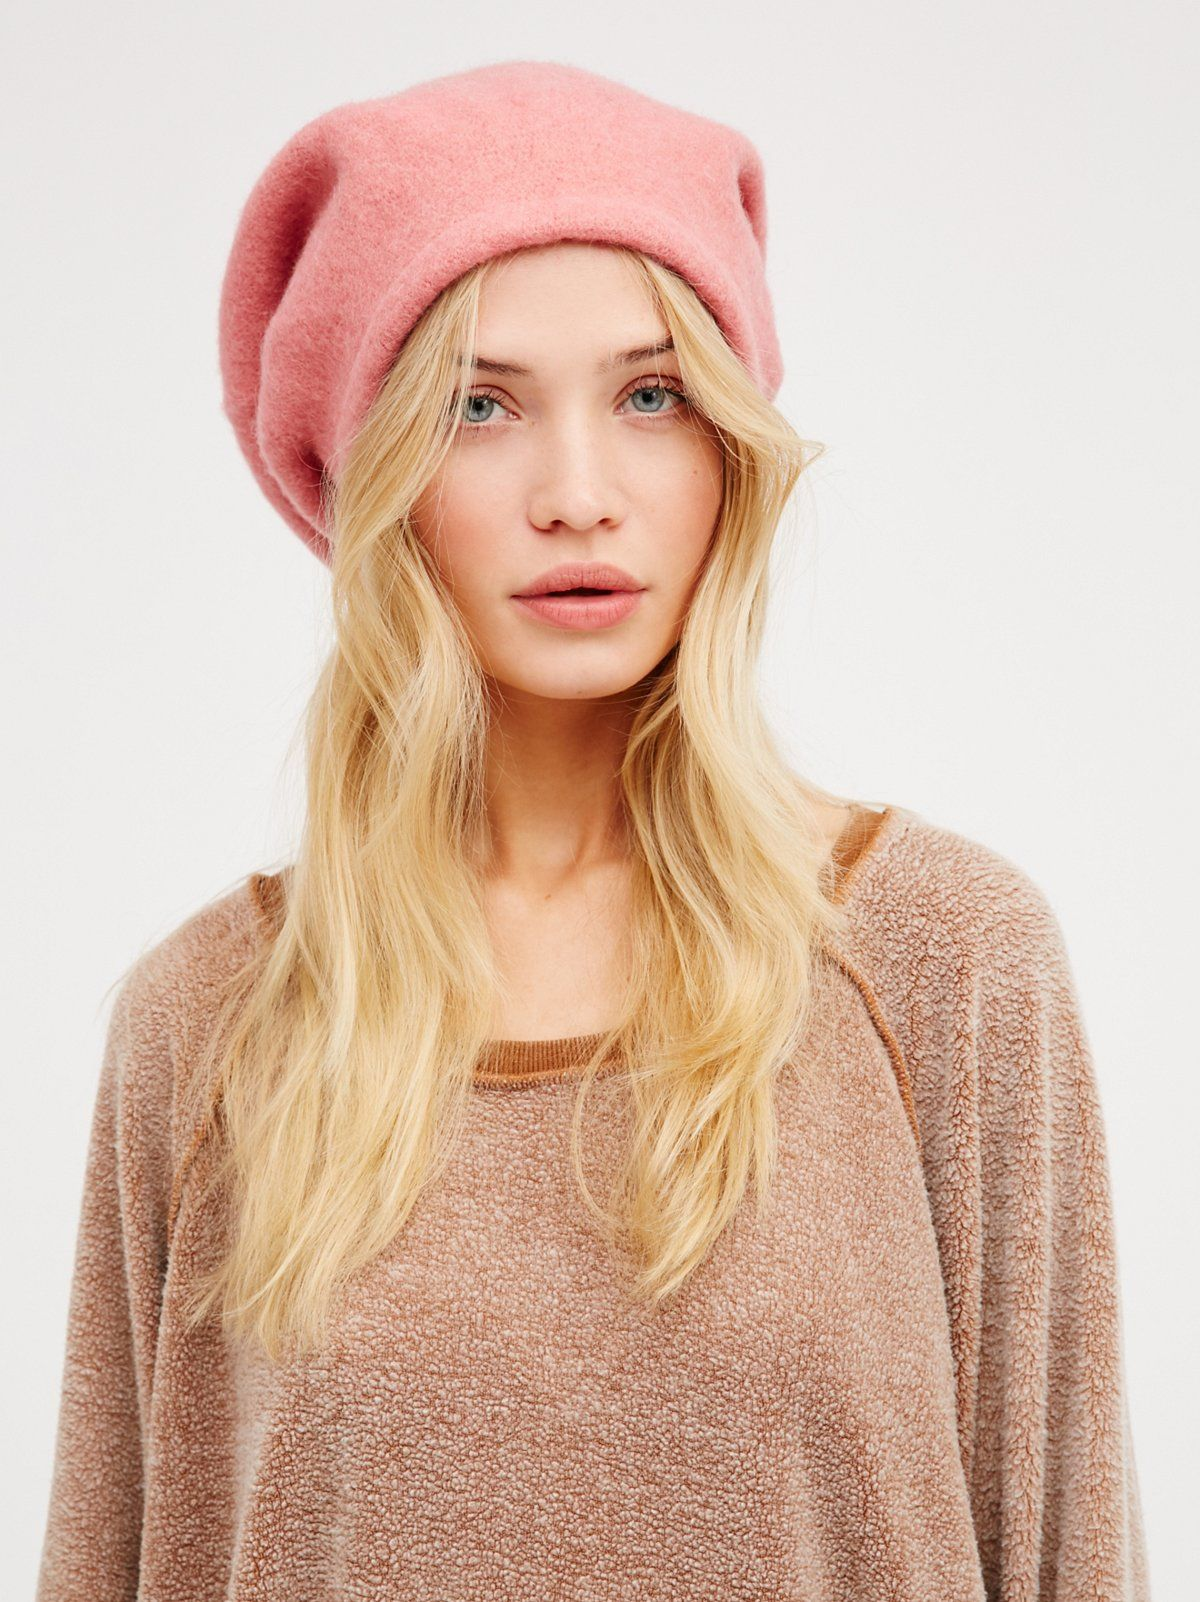 771d74b61bd3a Bisous Slouchy Beret at Free People Clothing Boutique